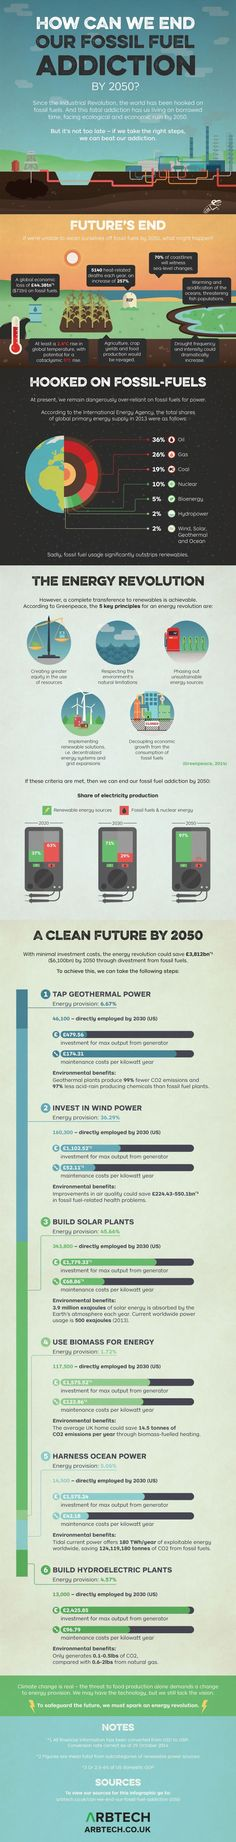 INFOGRAPHIC: Ending our fossil fuel addiction by 2050   Inhabitat - Green Design, Innovation, Architecture, Green Building #renewableenergy